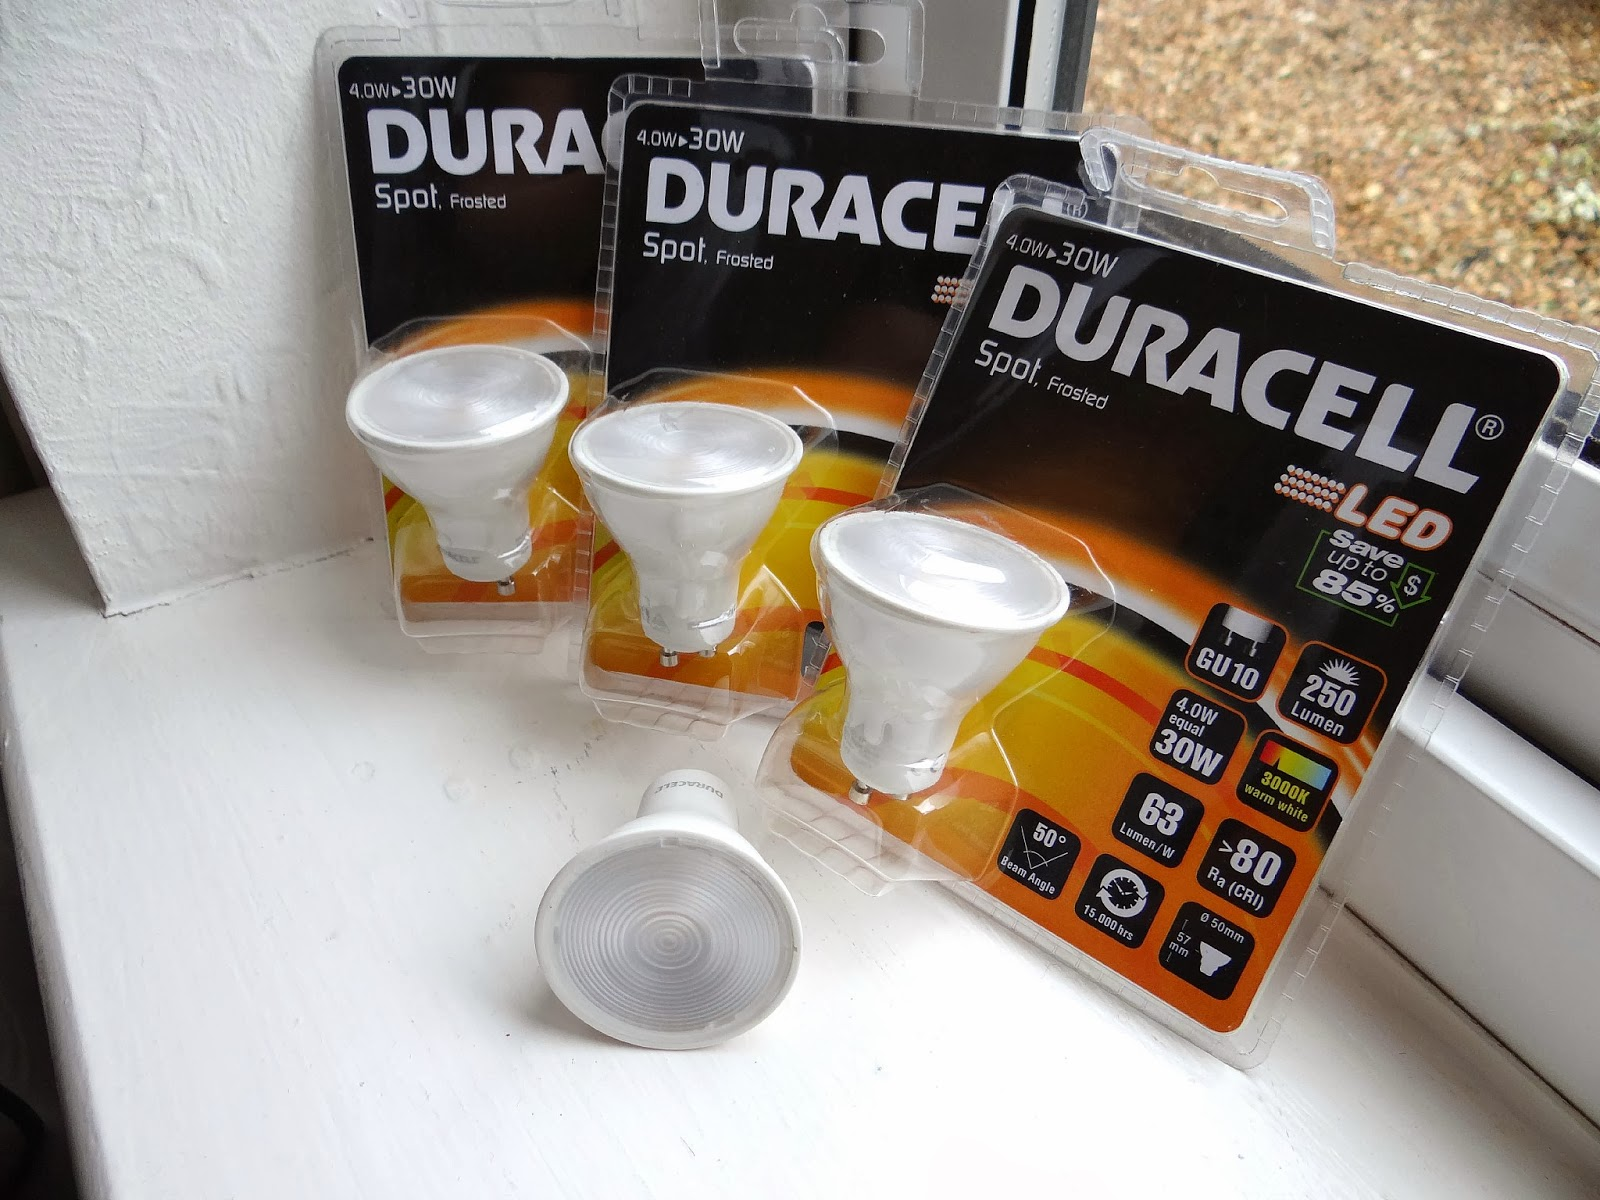 energy saving bulbs, Duracell light bulbs, Duracell LED Spot Frosted Bulb